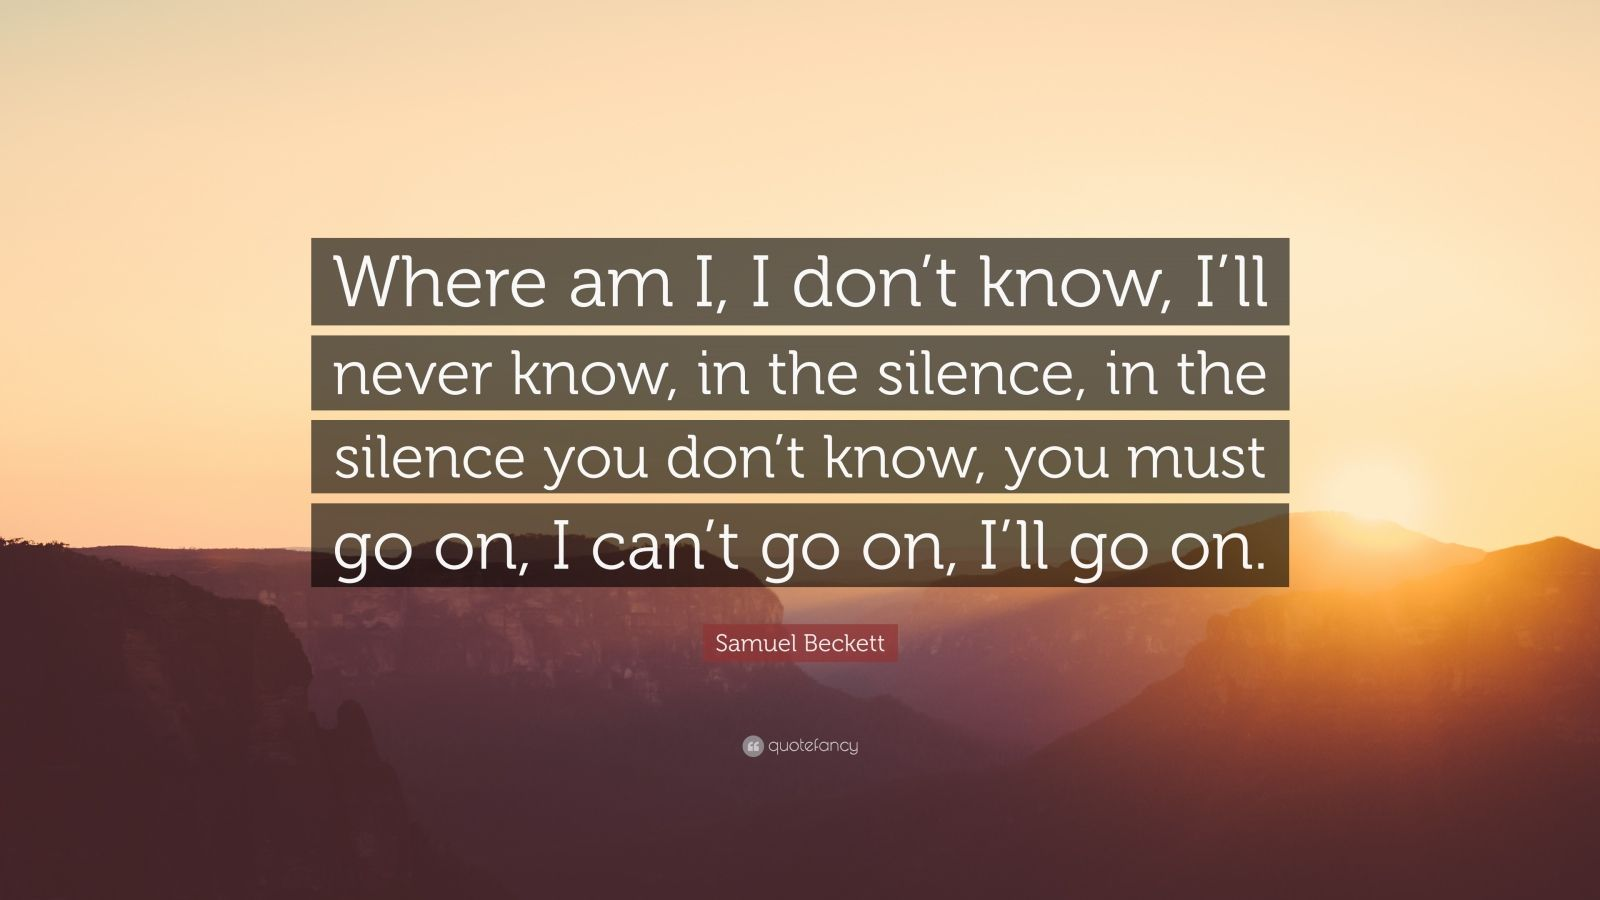 """Samuel Beckett Quote: """"Where am I, I don't know, I'll never know, in the silence, in the silence you don't know, you must go on, I can't go on, I'll go on."""""""